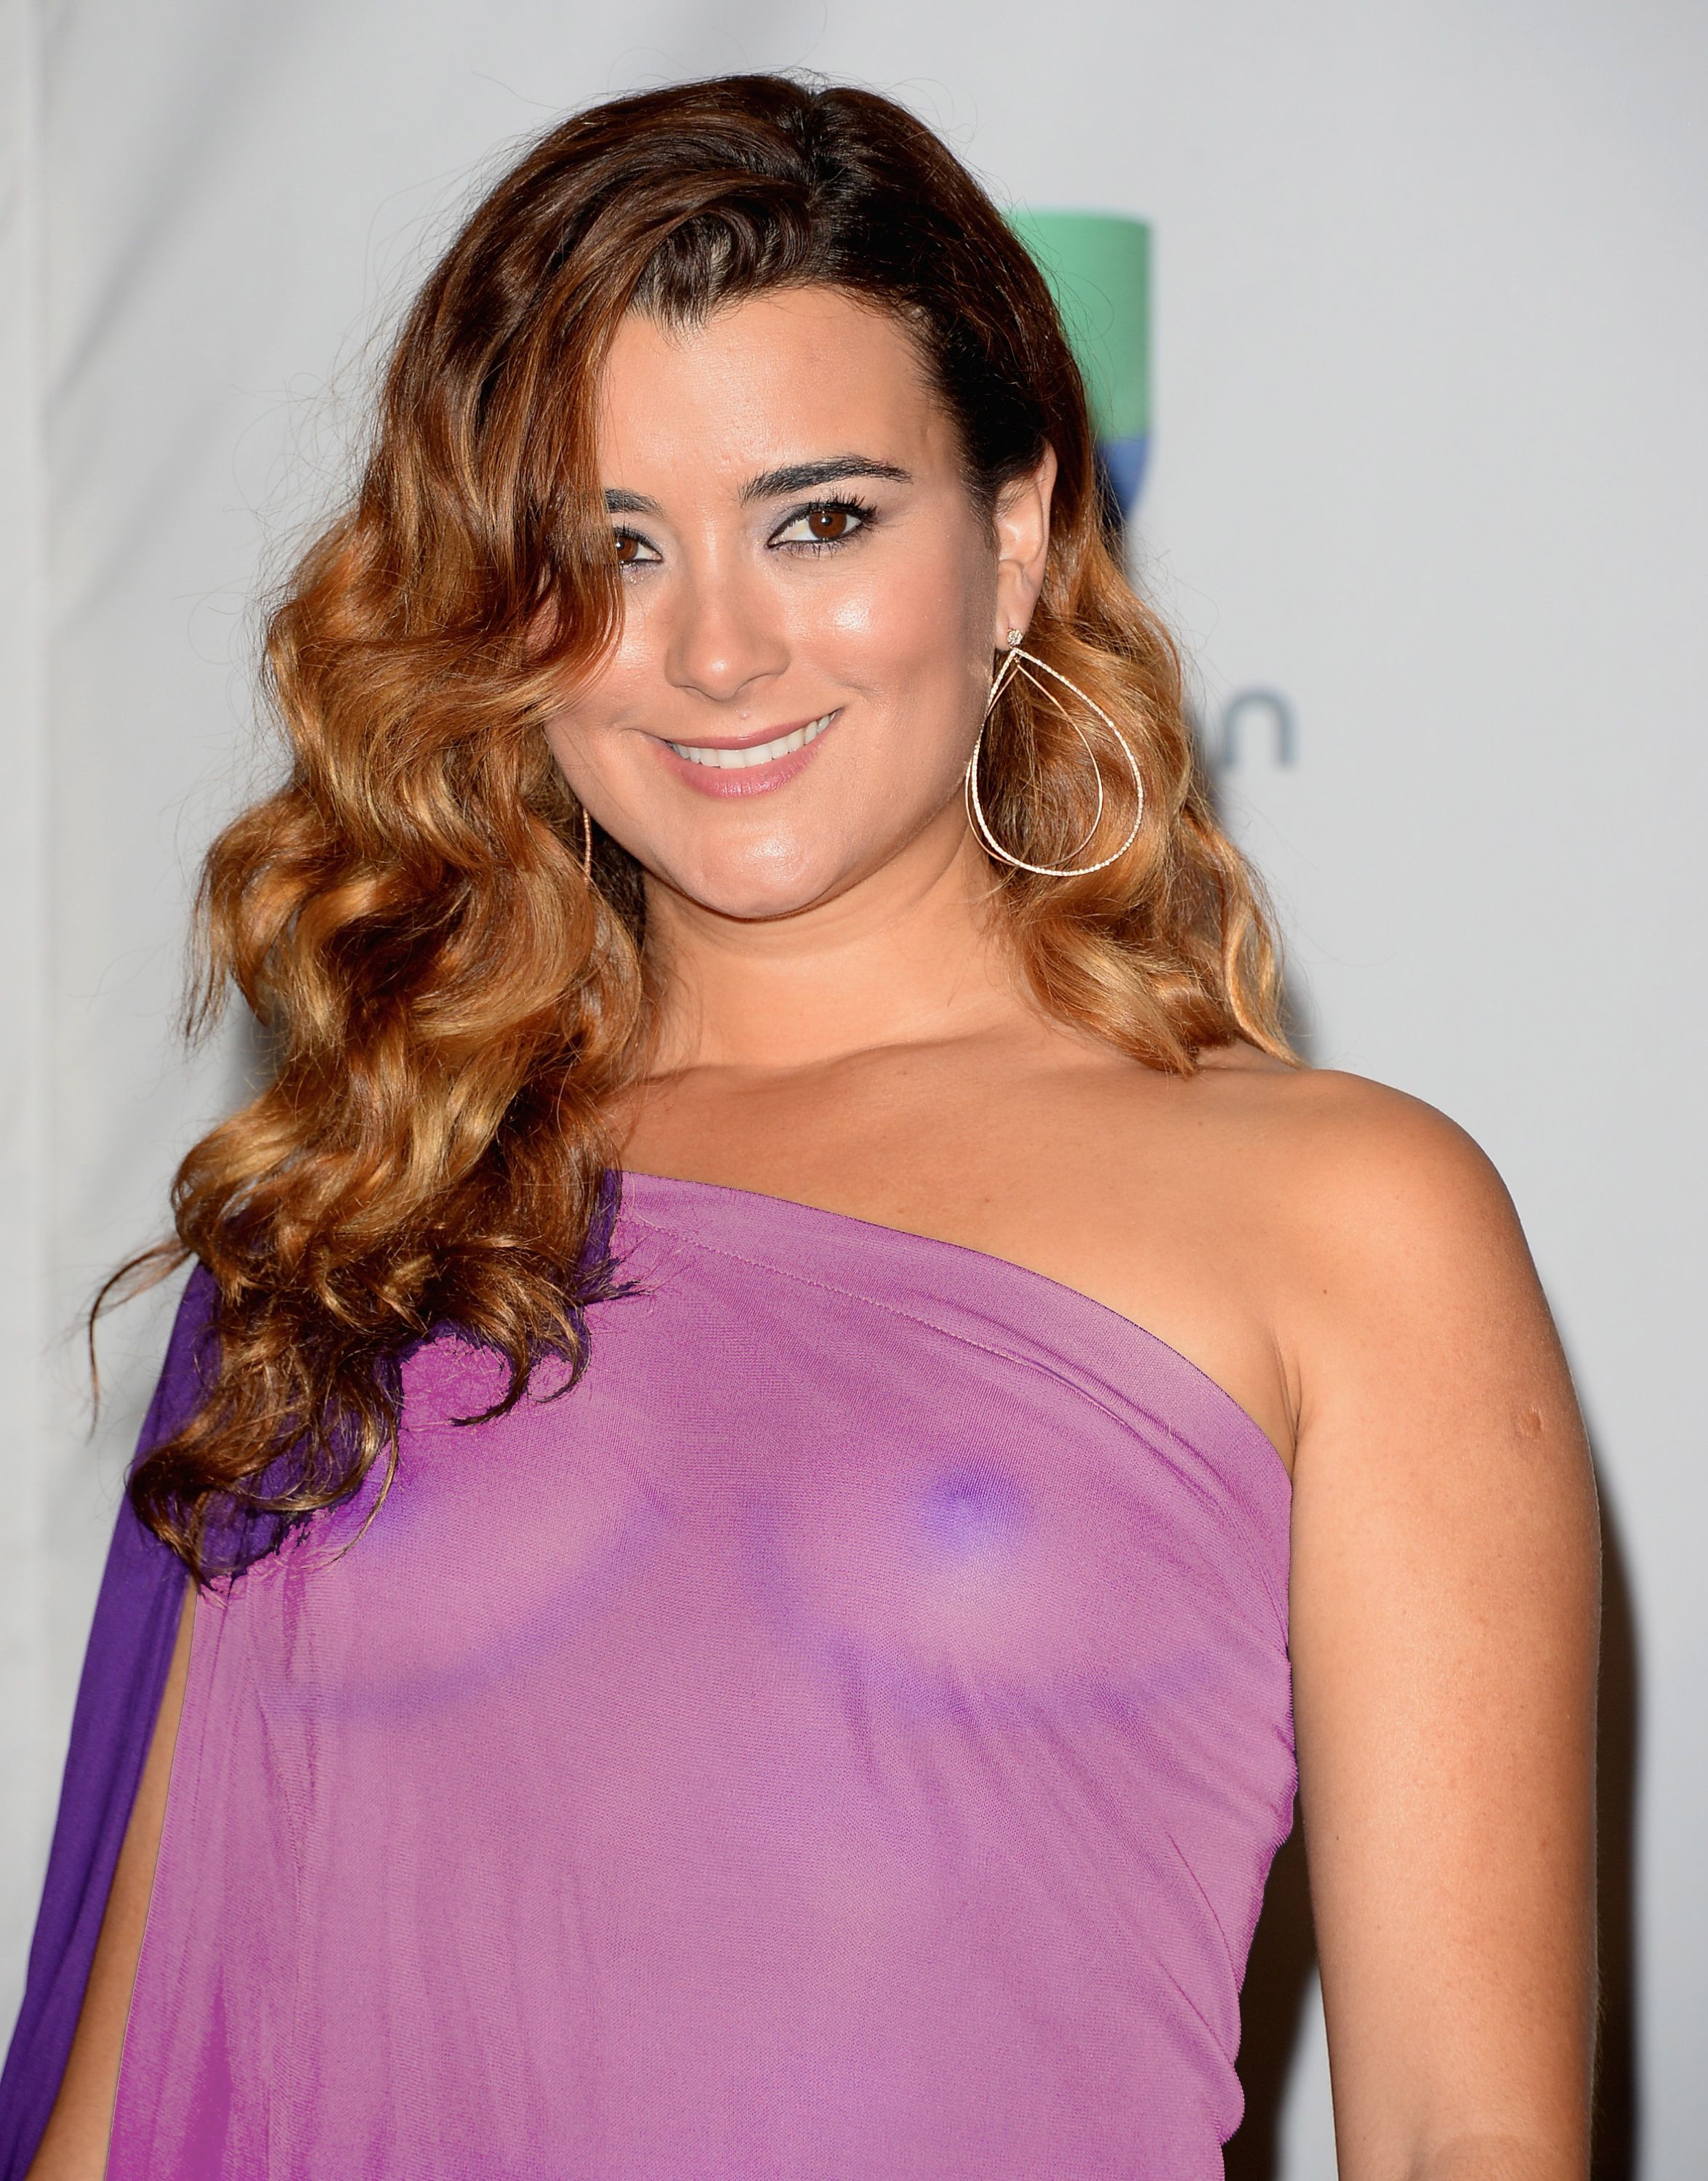 Cote depablo naked but